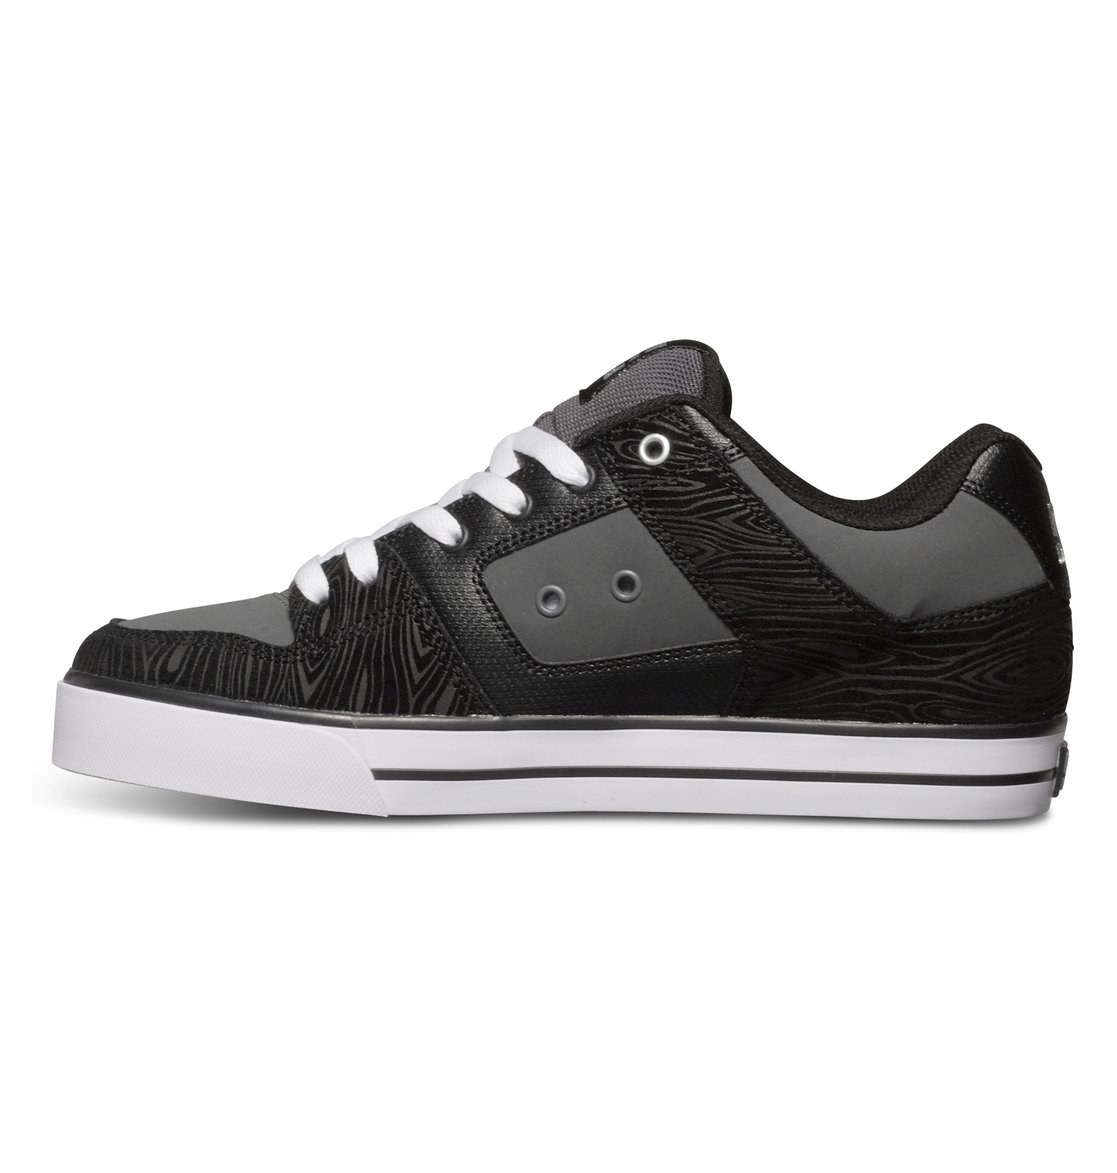 2956a443e0f8c 2 Pure Xe 301722 DC Shoes